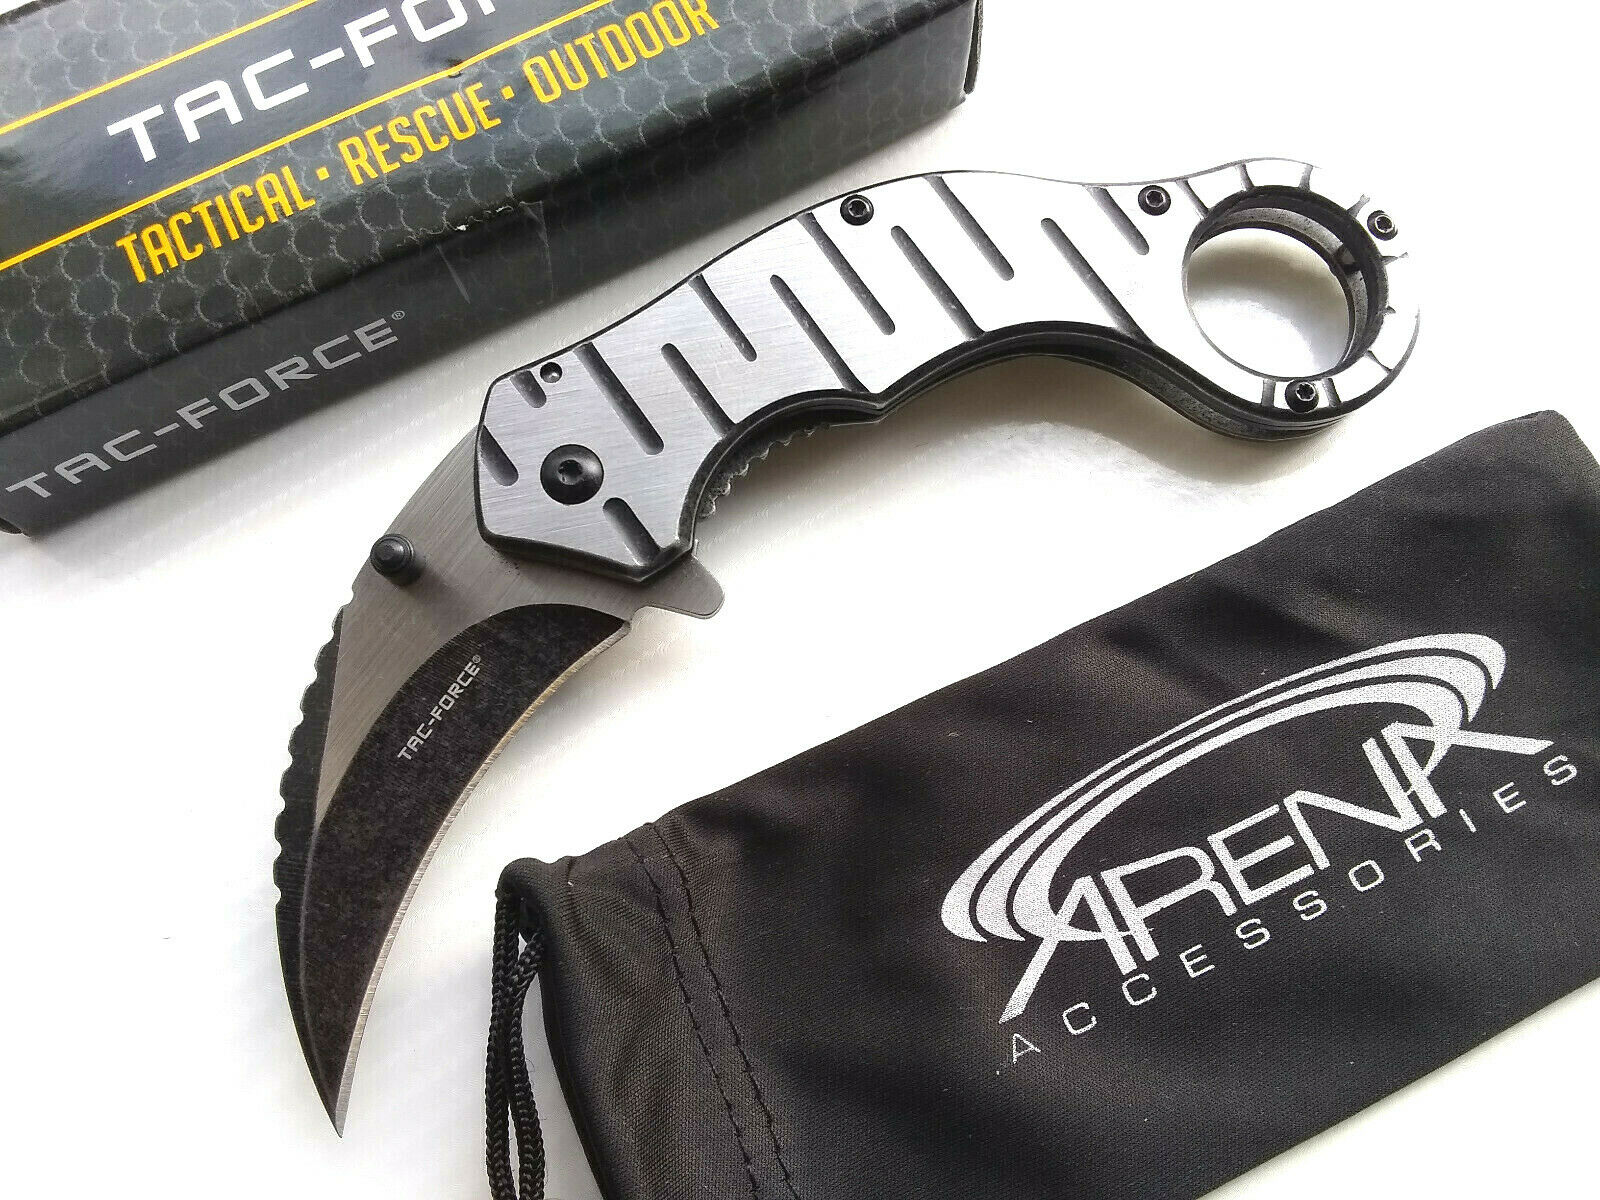 Tac-Force Brushed Metal Frame Lock Hawkbill Karambit Spring Assisted Pocket Knife Finger Hole EDC